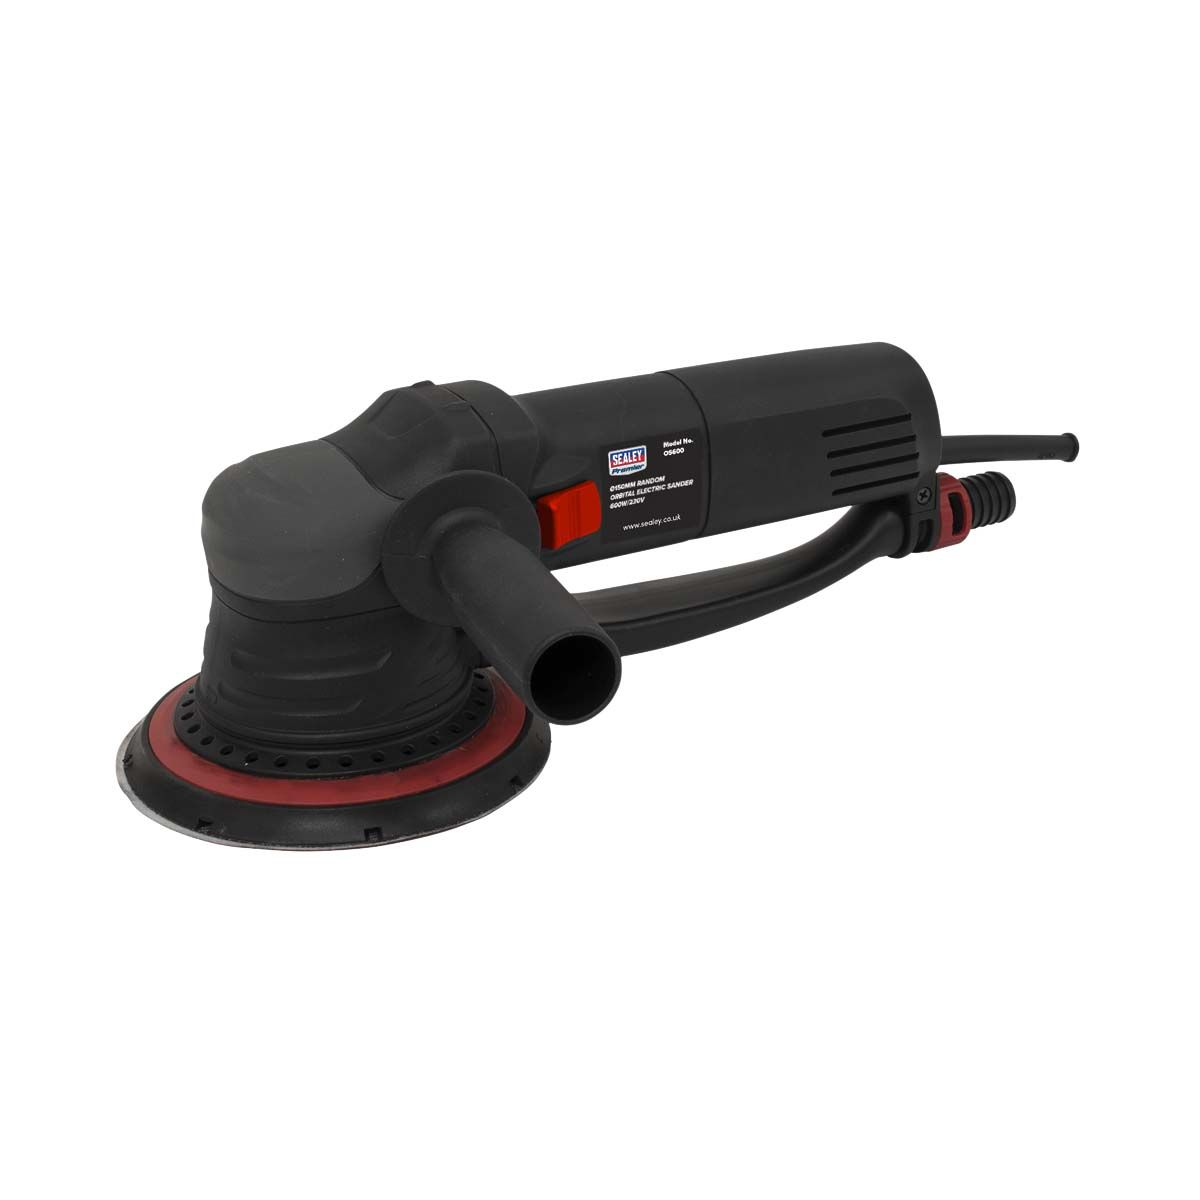 Sealey Random Orbital Electric Sander Ø150mm 600W/230V